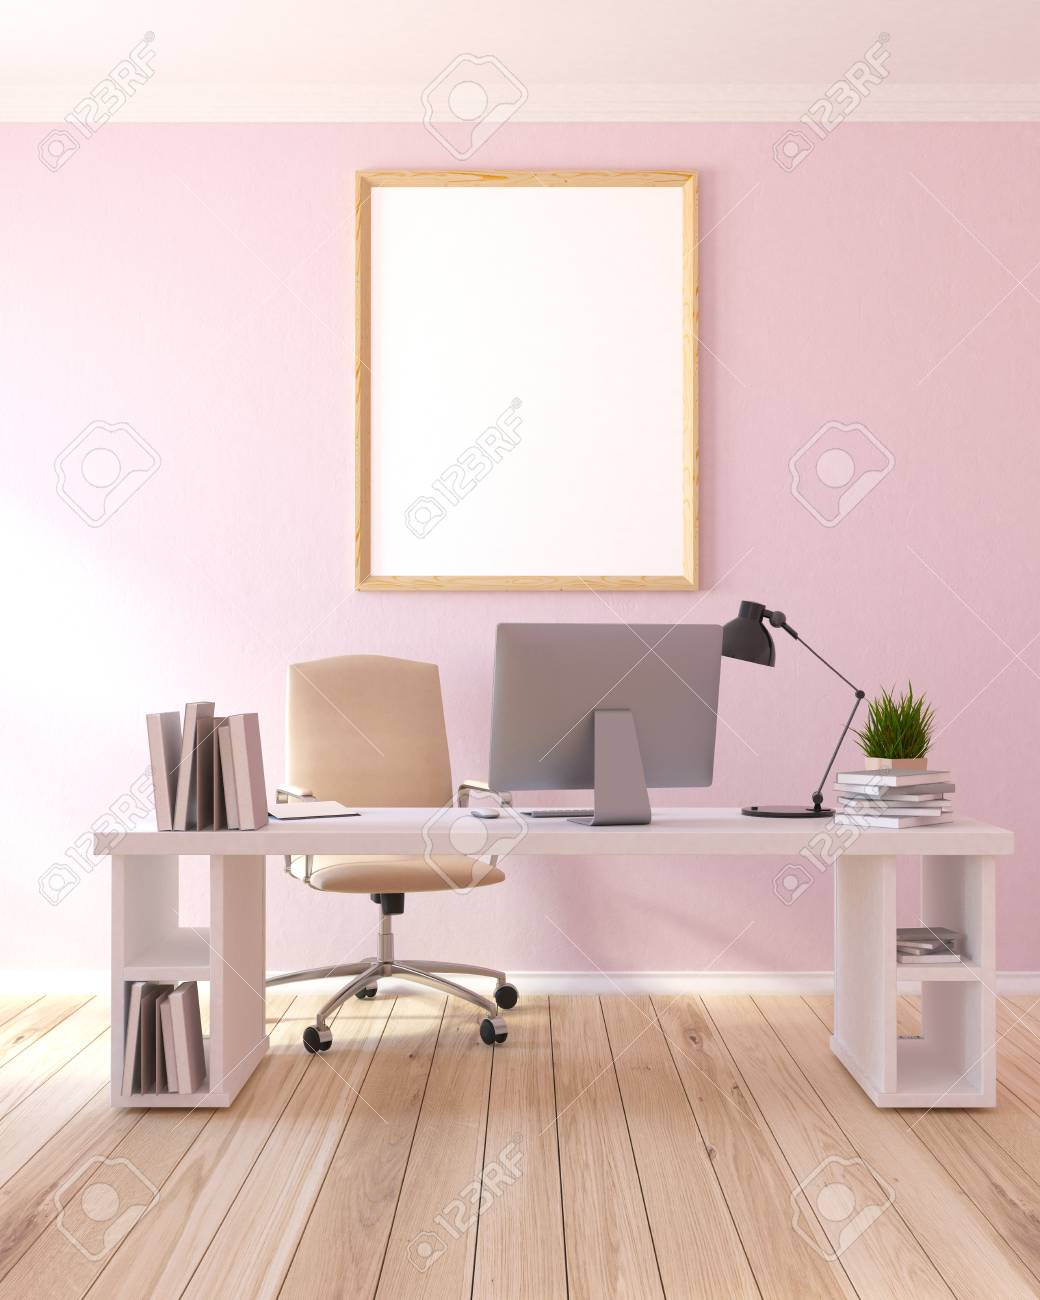 Interior of a modern home office with light pink walls a wooden interior of a modern home office with light pink walls a wooden table with a aloadofball Image collections